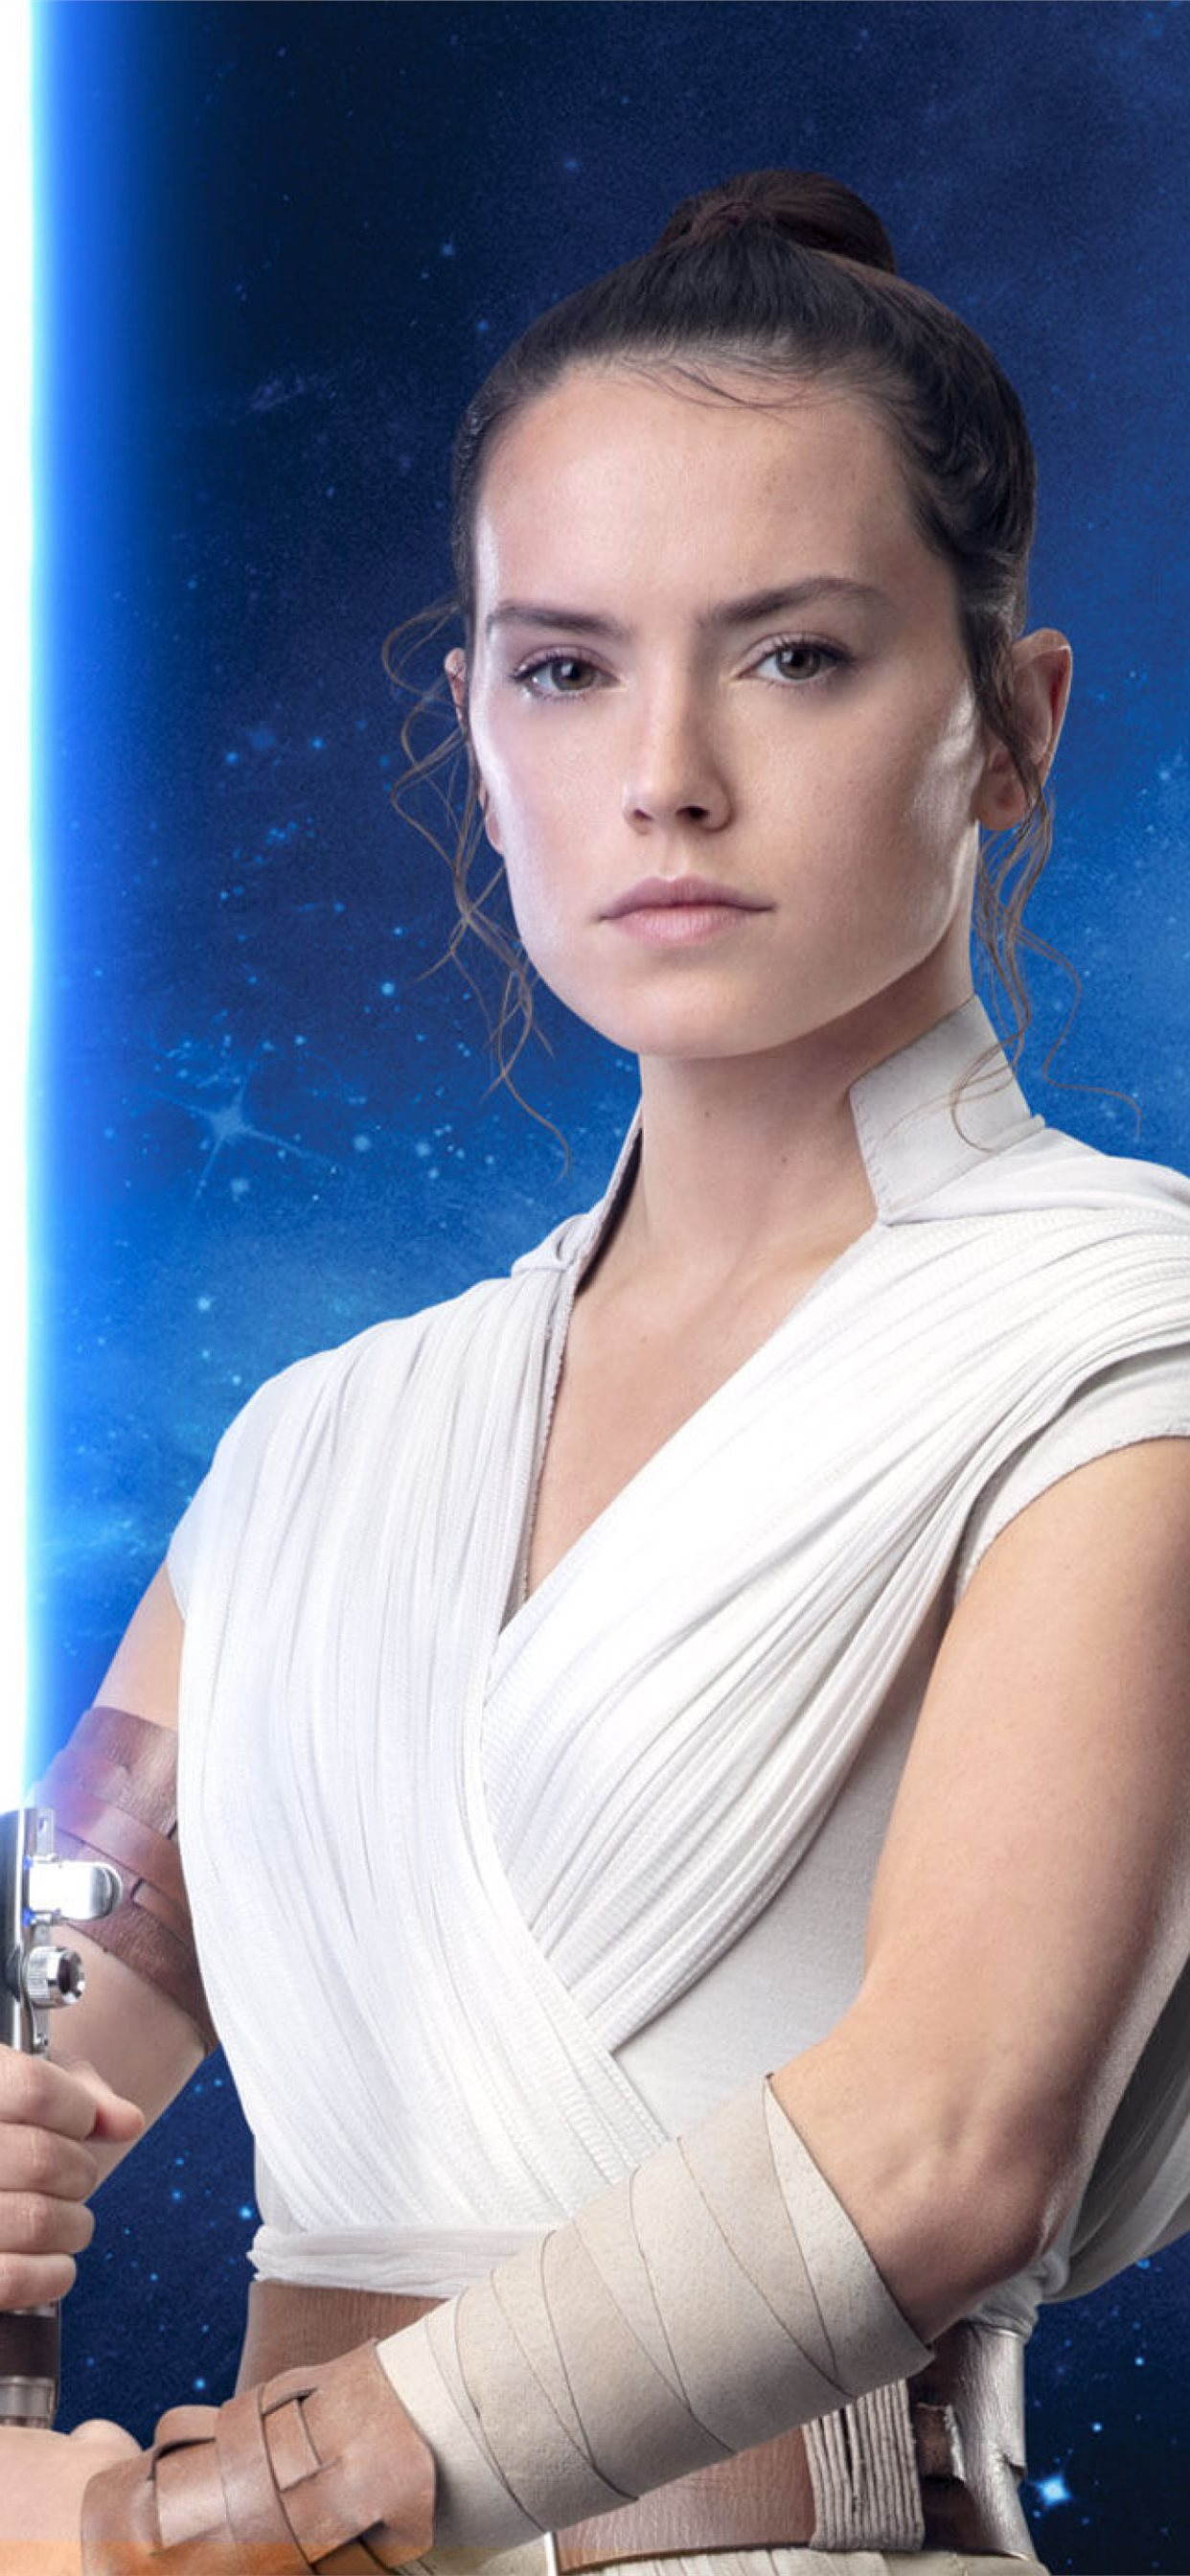 Star Wars The Rise Of Skywalker Poster Rey Iphone Wallpapers Free Download